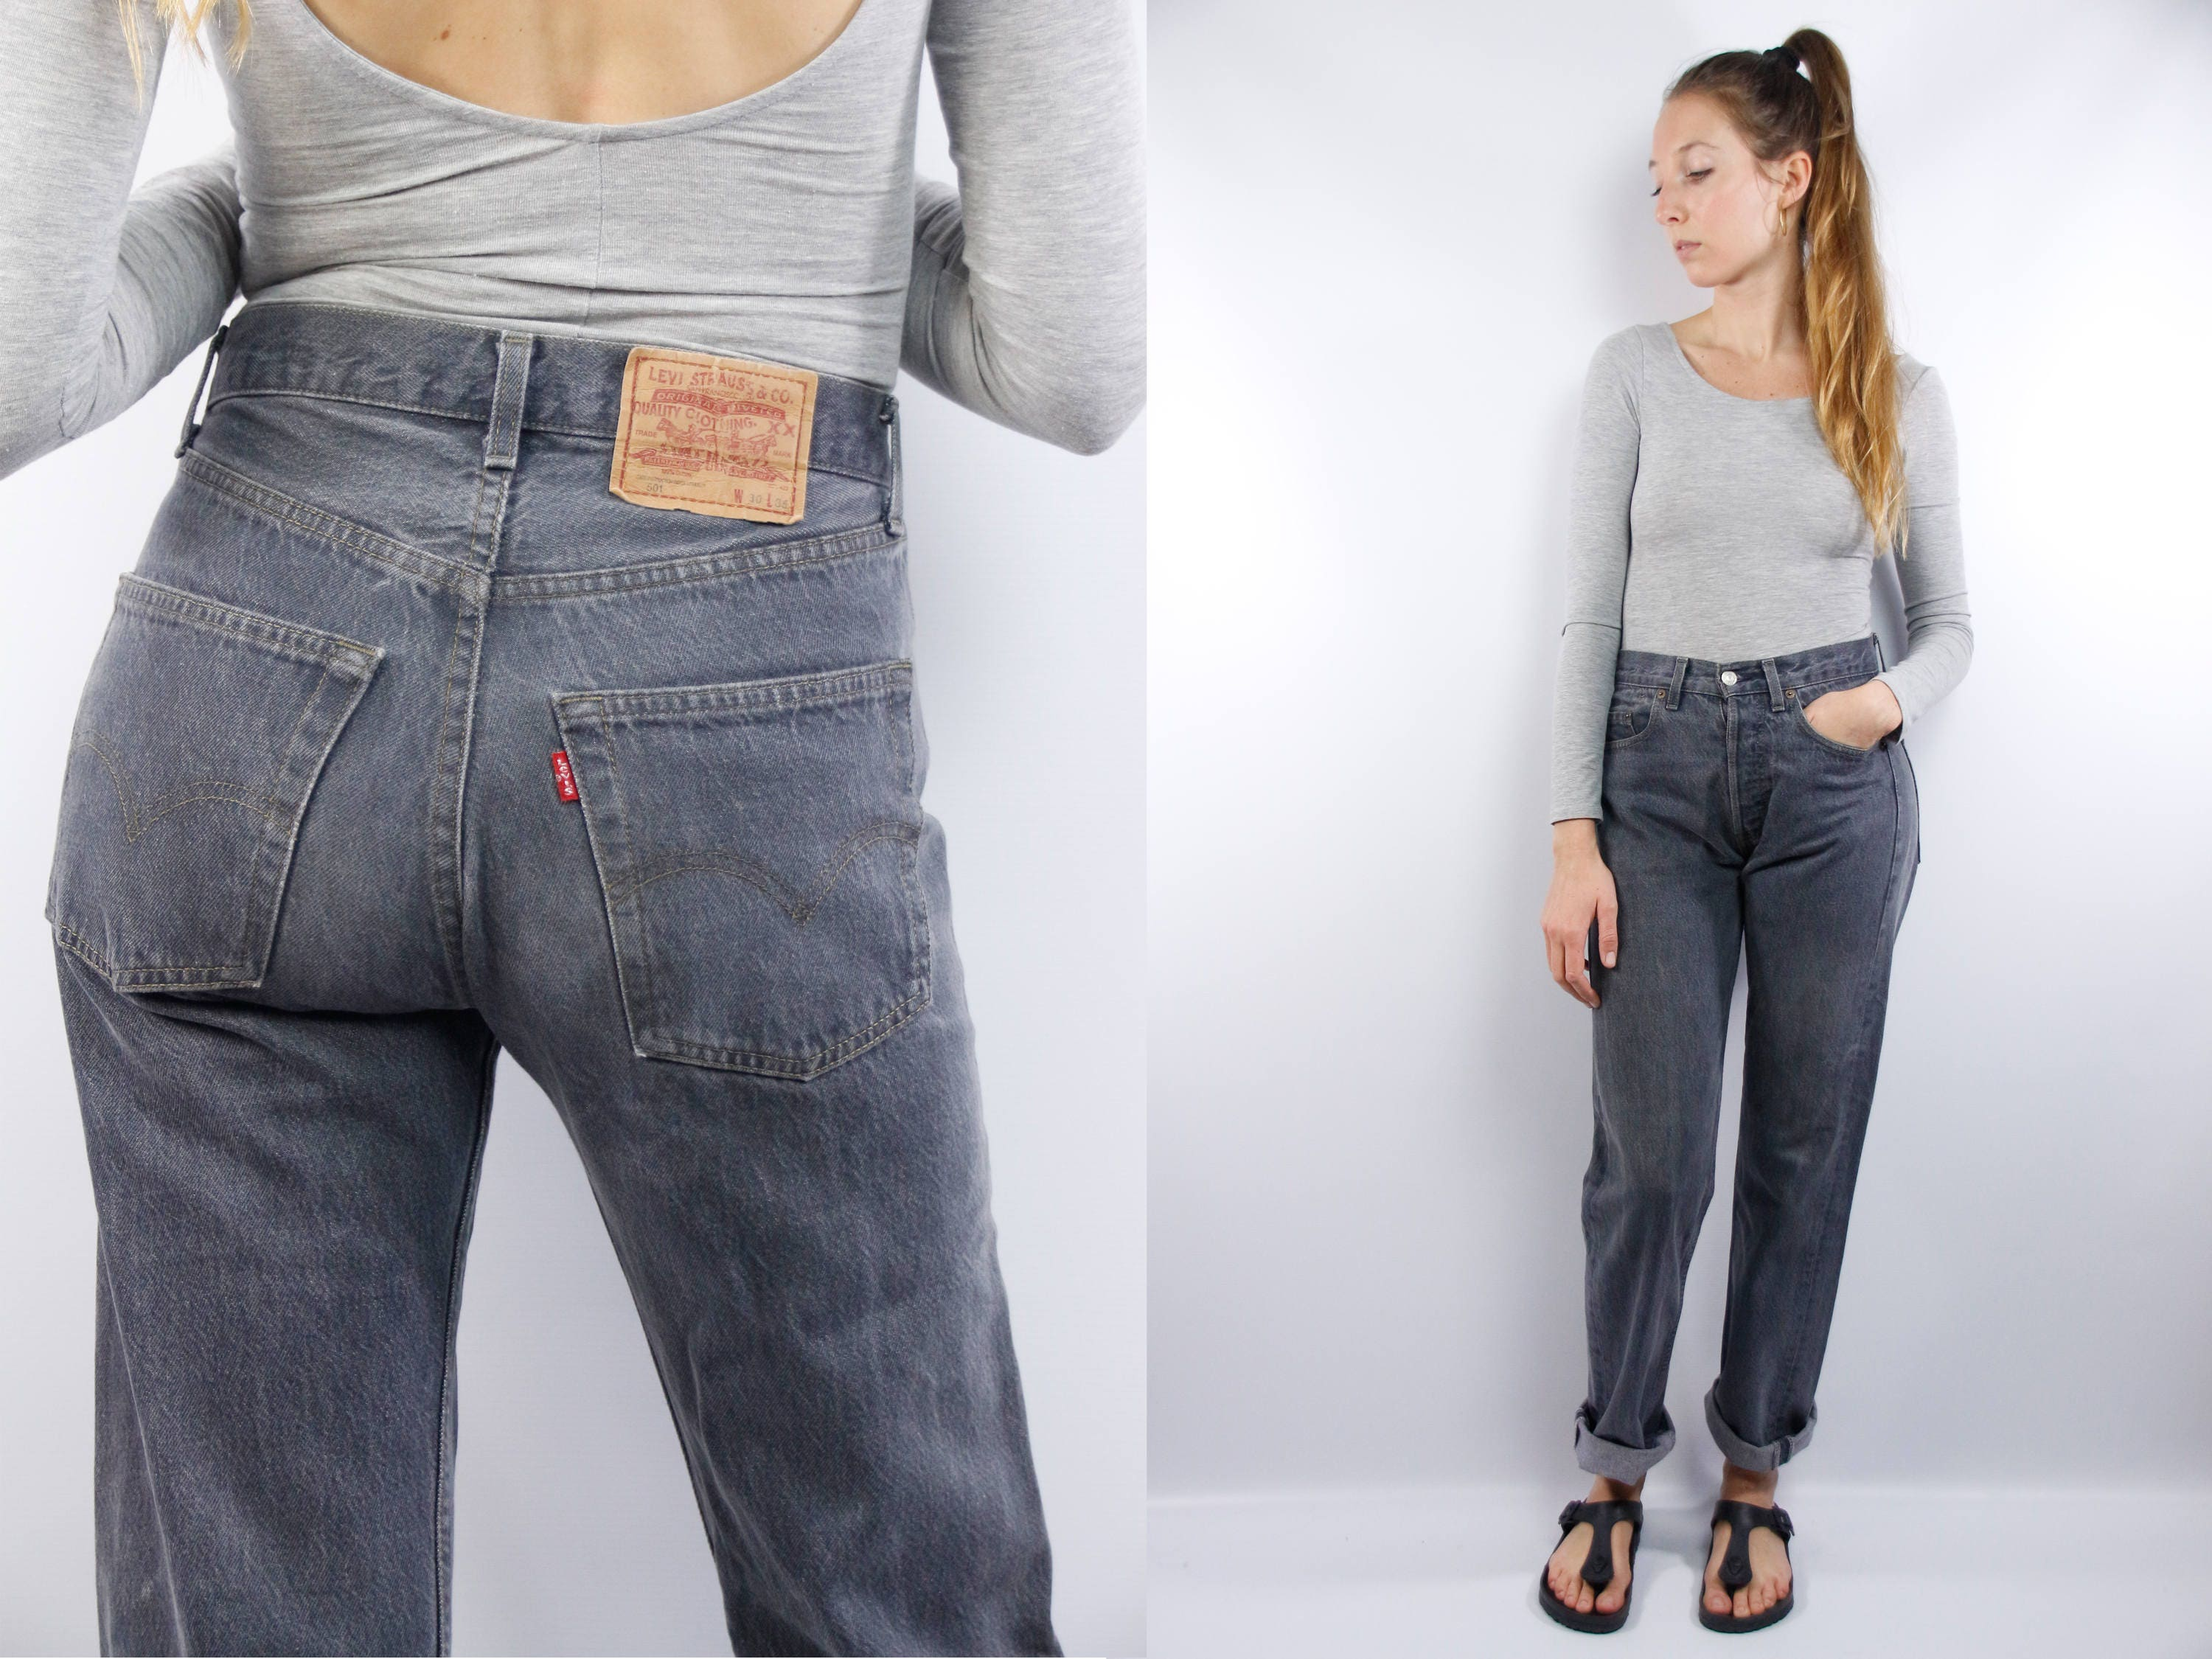 vintage levis 501 levis 501 grey levis mom jeans high waist jeans high waisted jeans. Black Bedroom Furniture Sets. Home Design Ideas